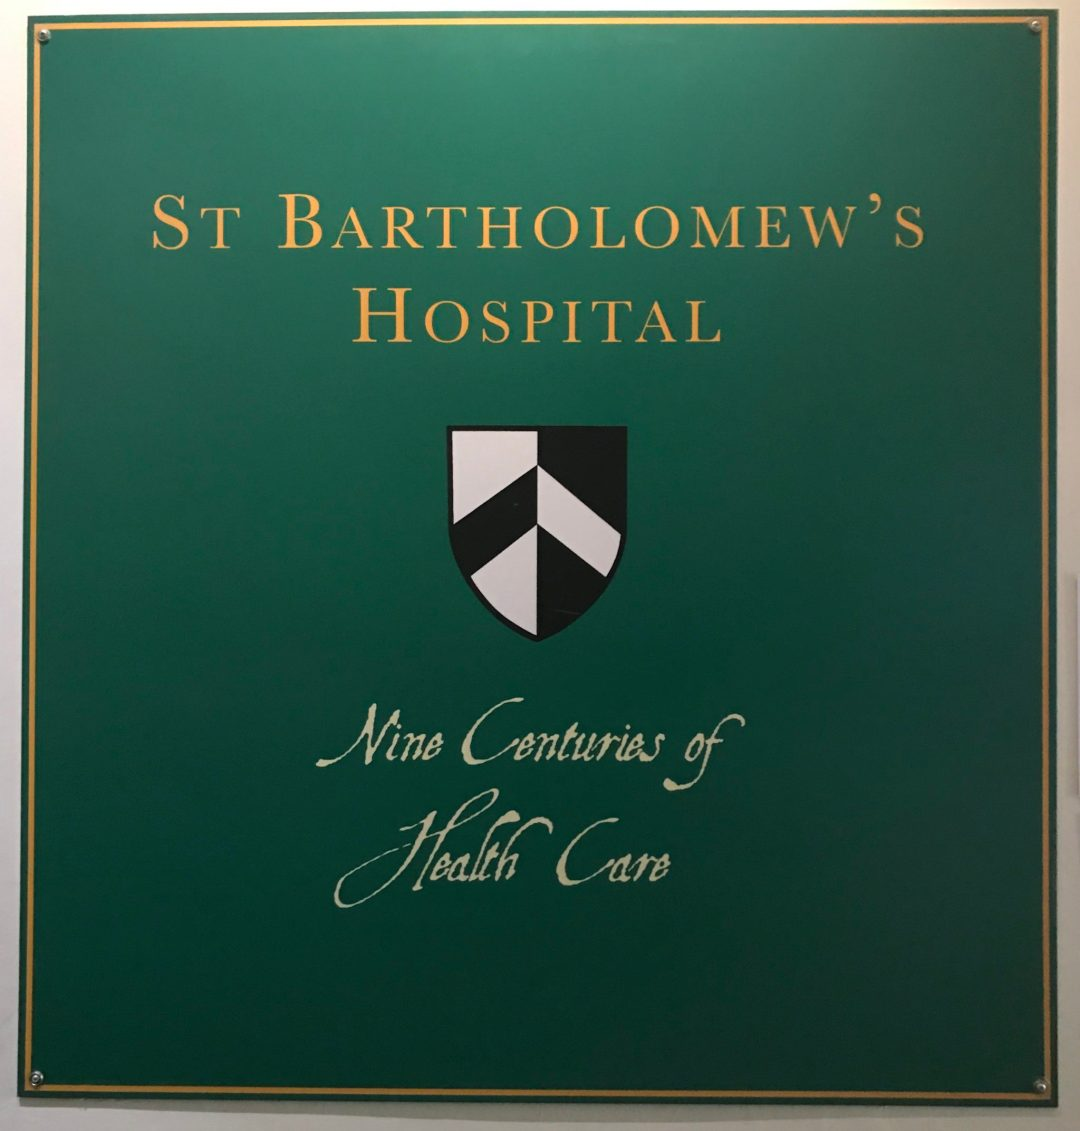 7 things you probably didn't know about St Bartholomew's Hospital